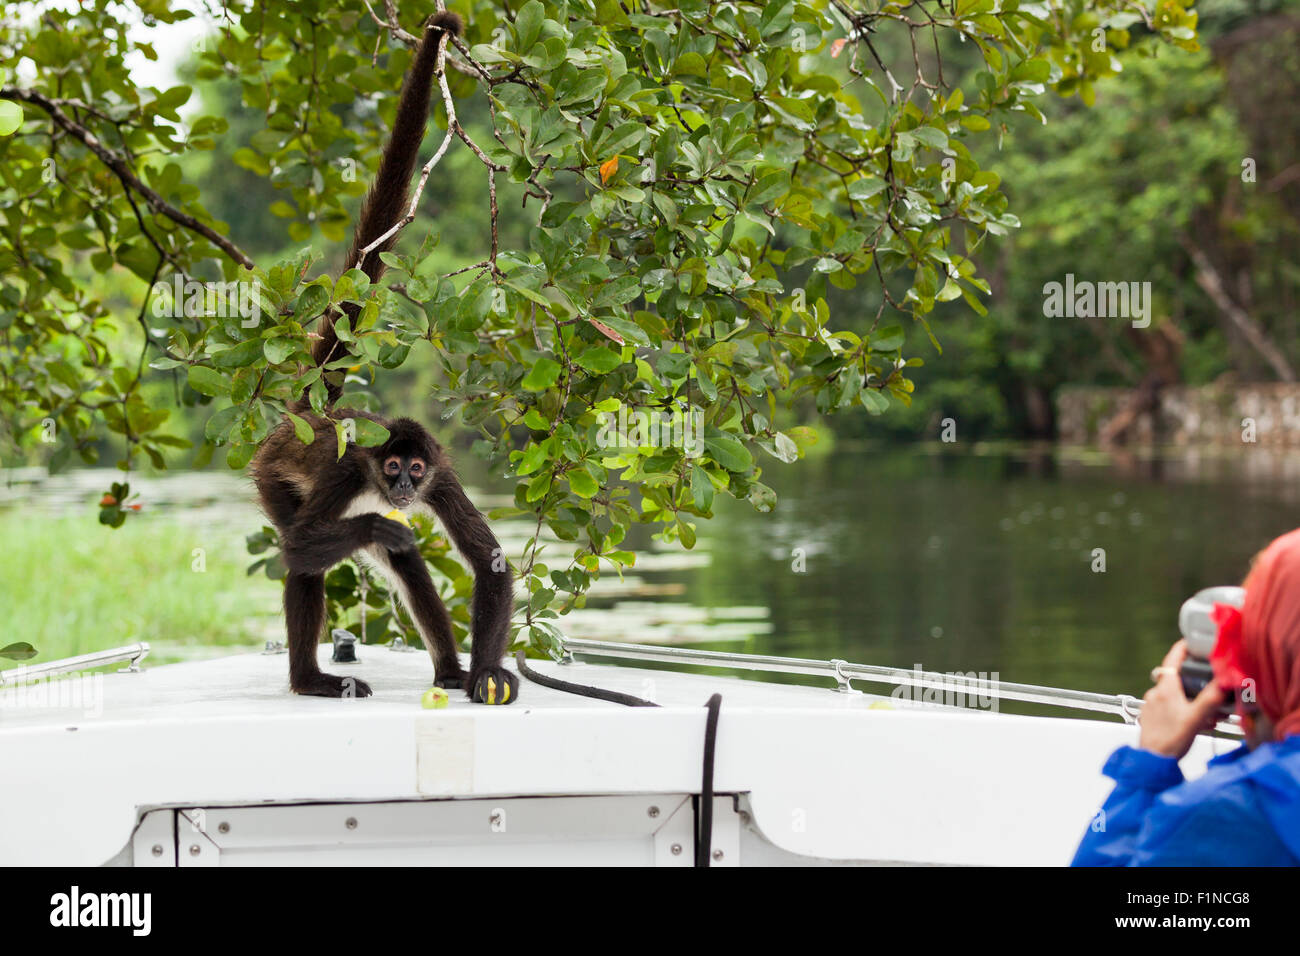 A spider monkey holds on to a tree while on the bow of a tourist boat to eat some fruit while people take pictures. - Stock Image